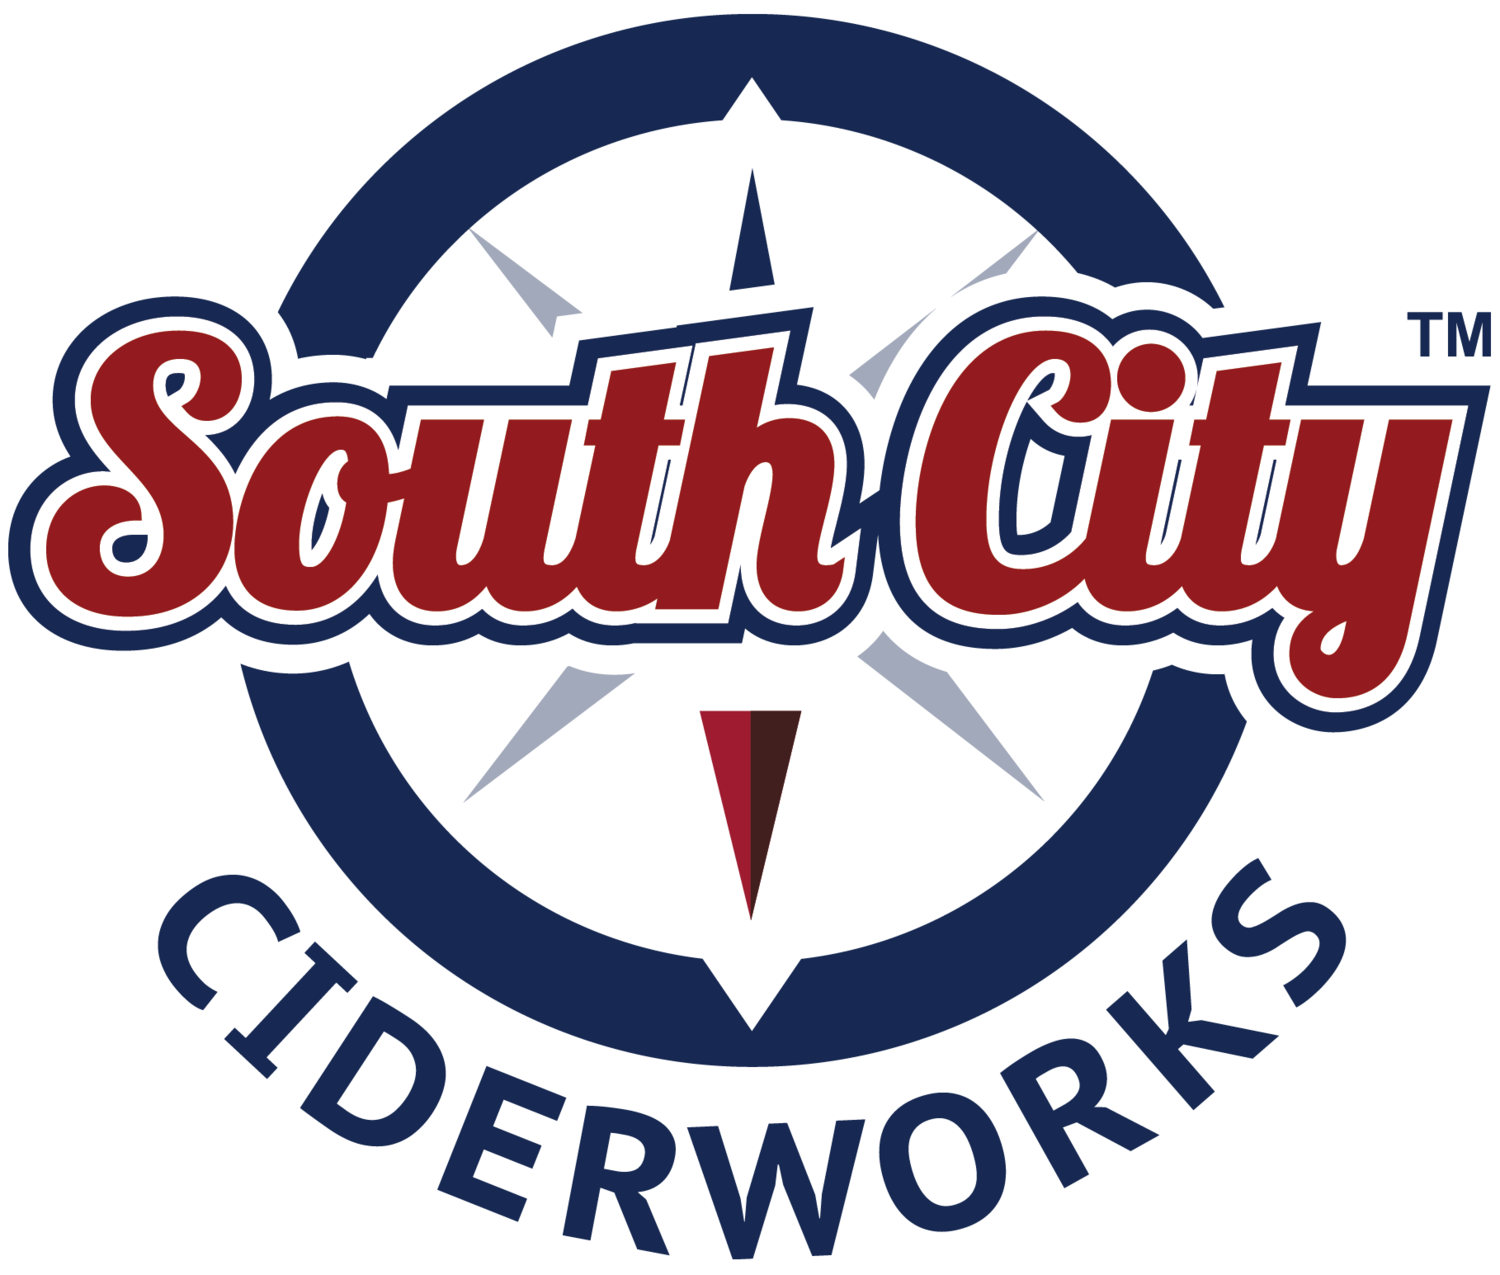 South City Cider